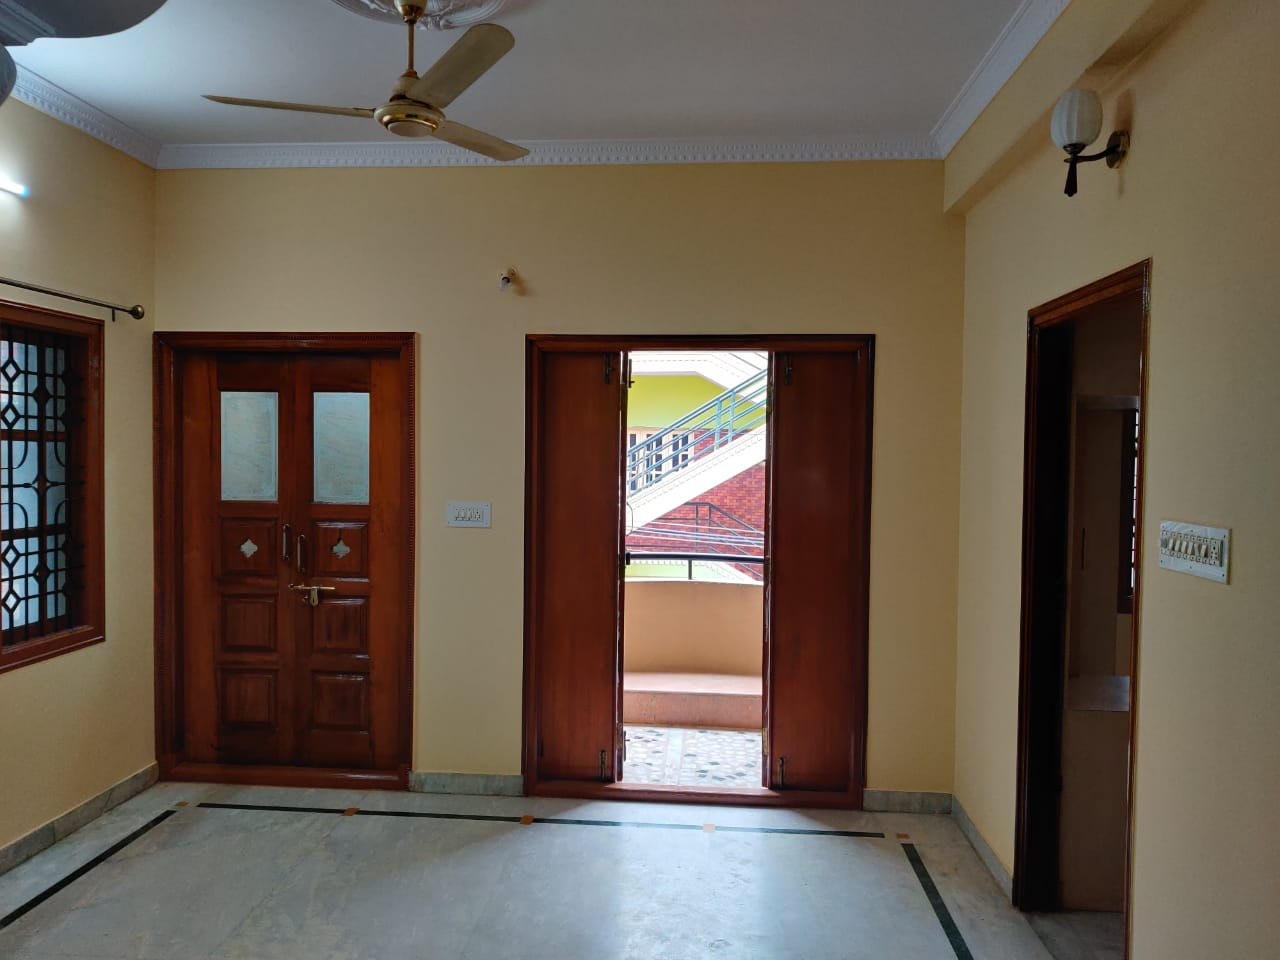 10 Flats for Rent in ISRO Layout, Bangalore, Apartments ...